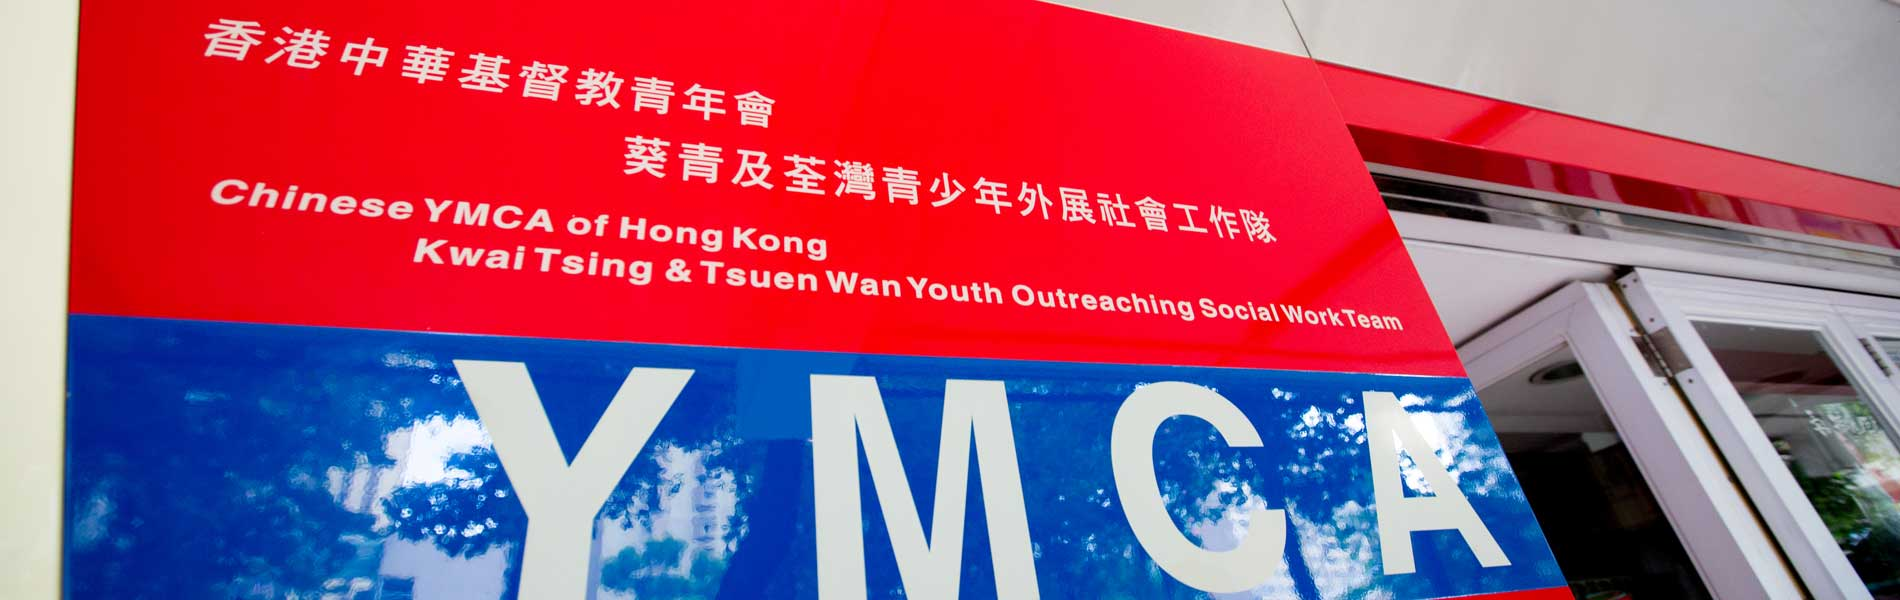 Kwai Tsing & Tsuen Wan Youth Outreaching Social Work Team Photo